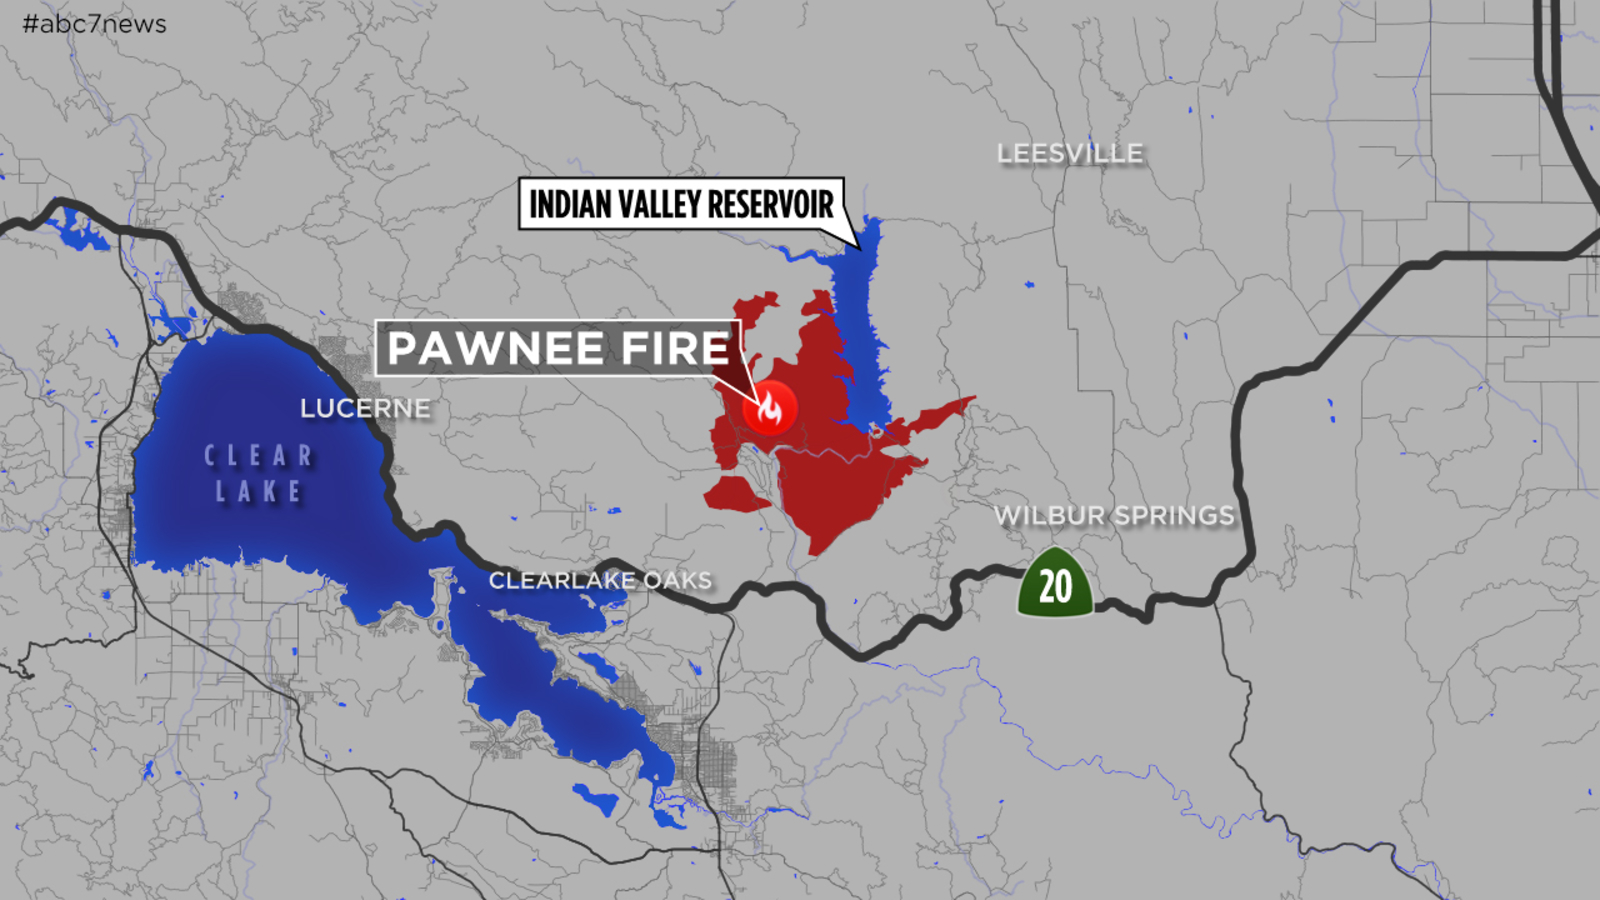 Cal Fire Map Lake County MAPS: A look at the 'Pawnee Fire' burning in Lake County near